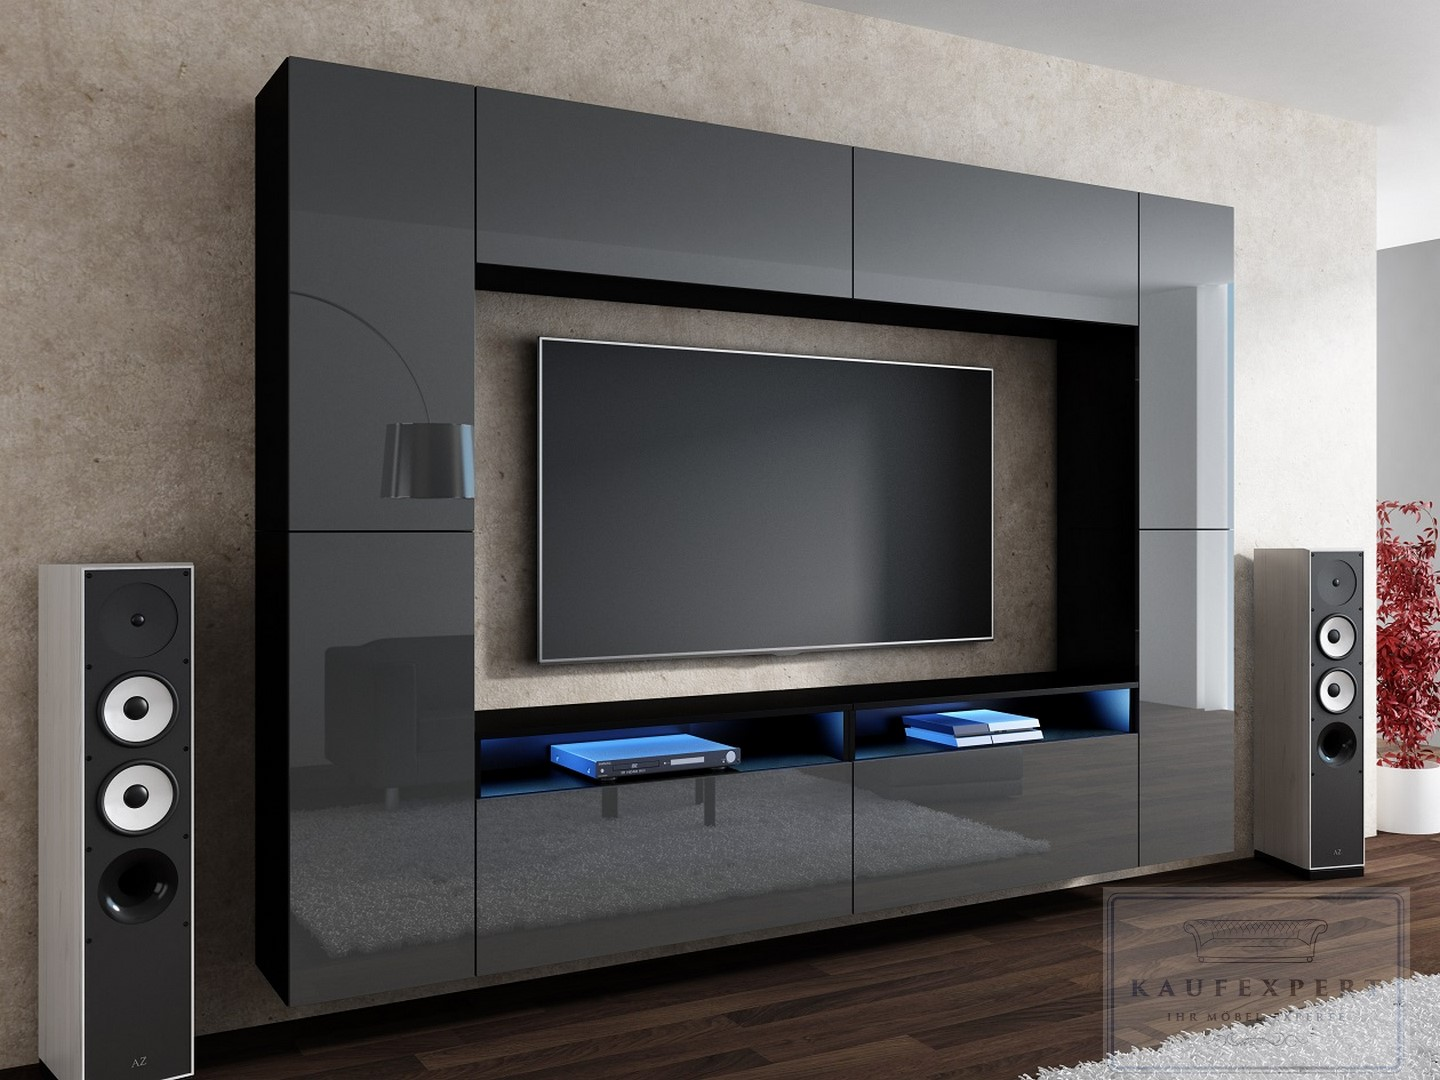 kaufexpert wohnwand cinema grau hochglanz schwarz mediawand medienwand design modern led. Black Bedroom Furniture Sets. Home Design Ideas